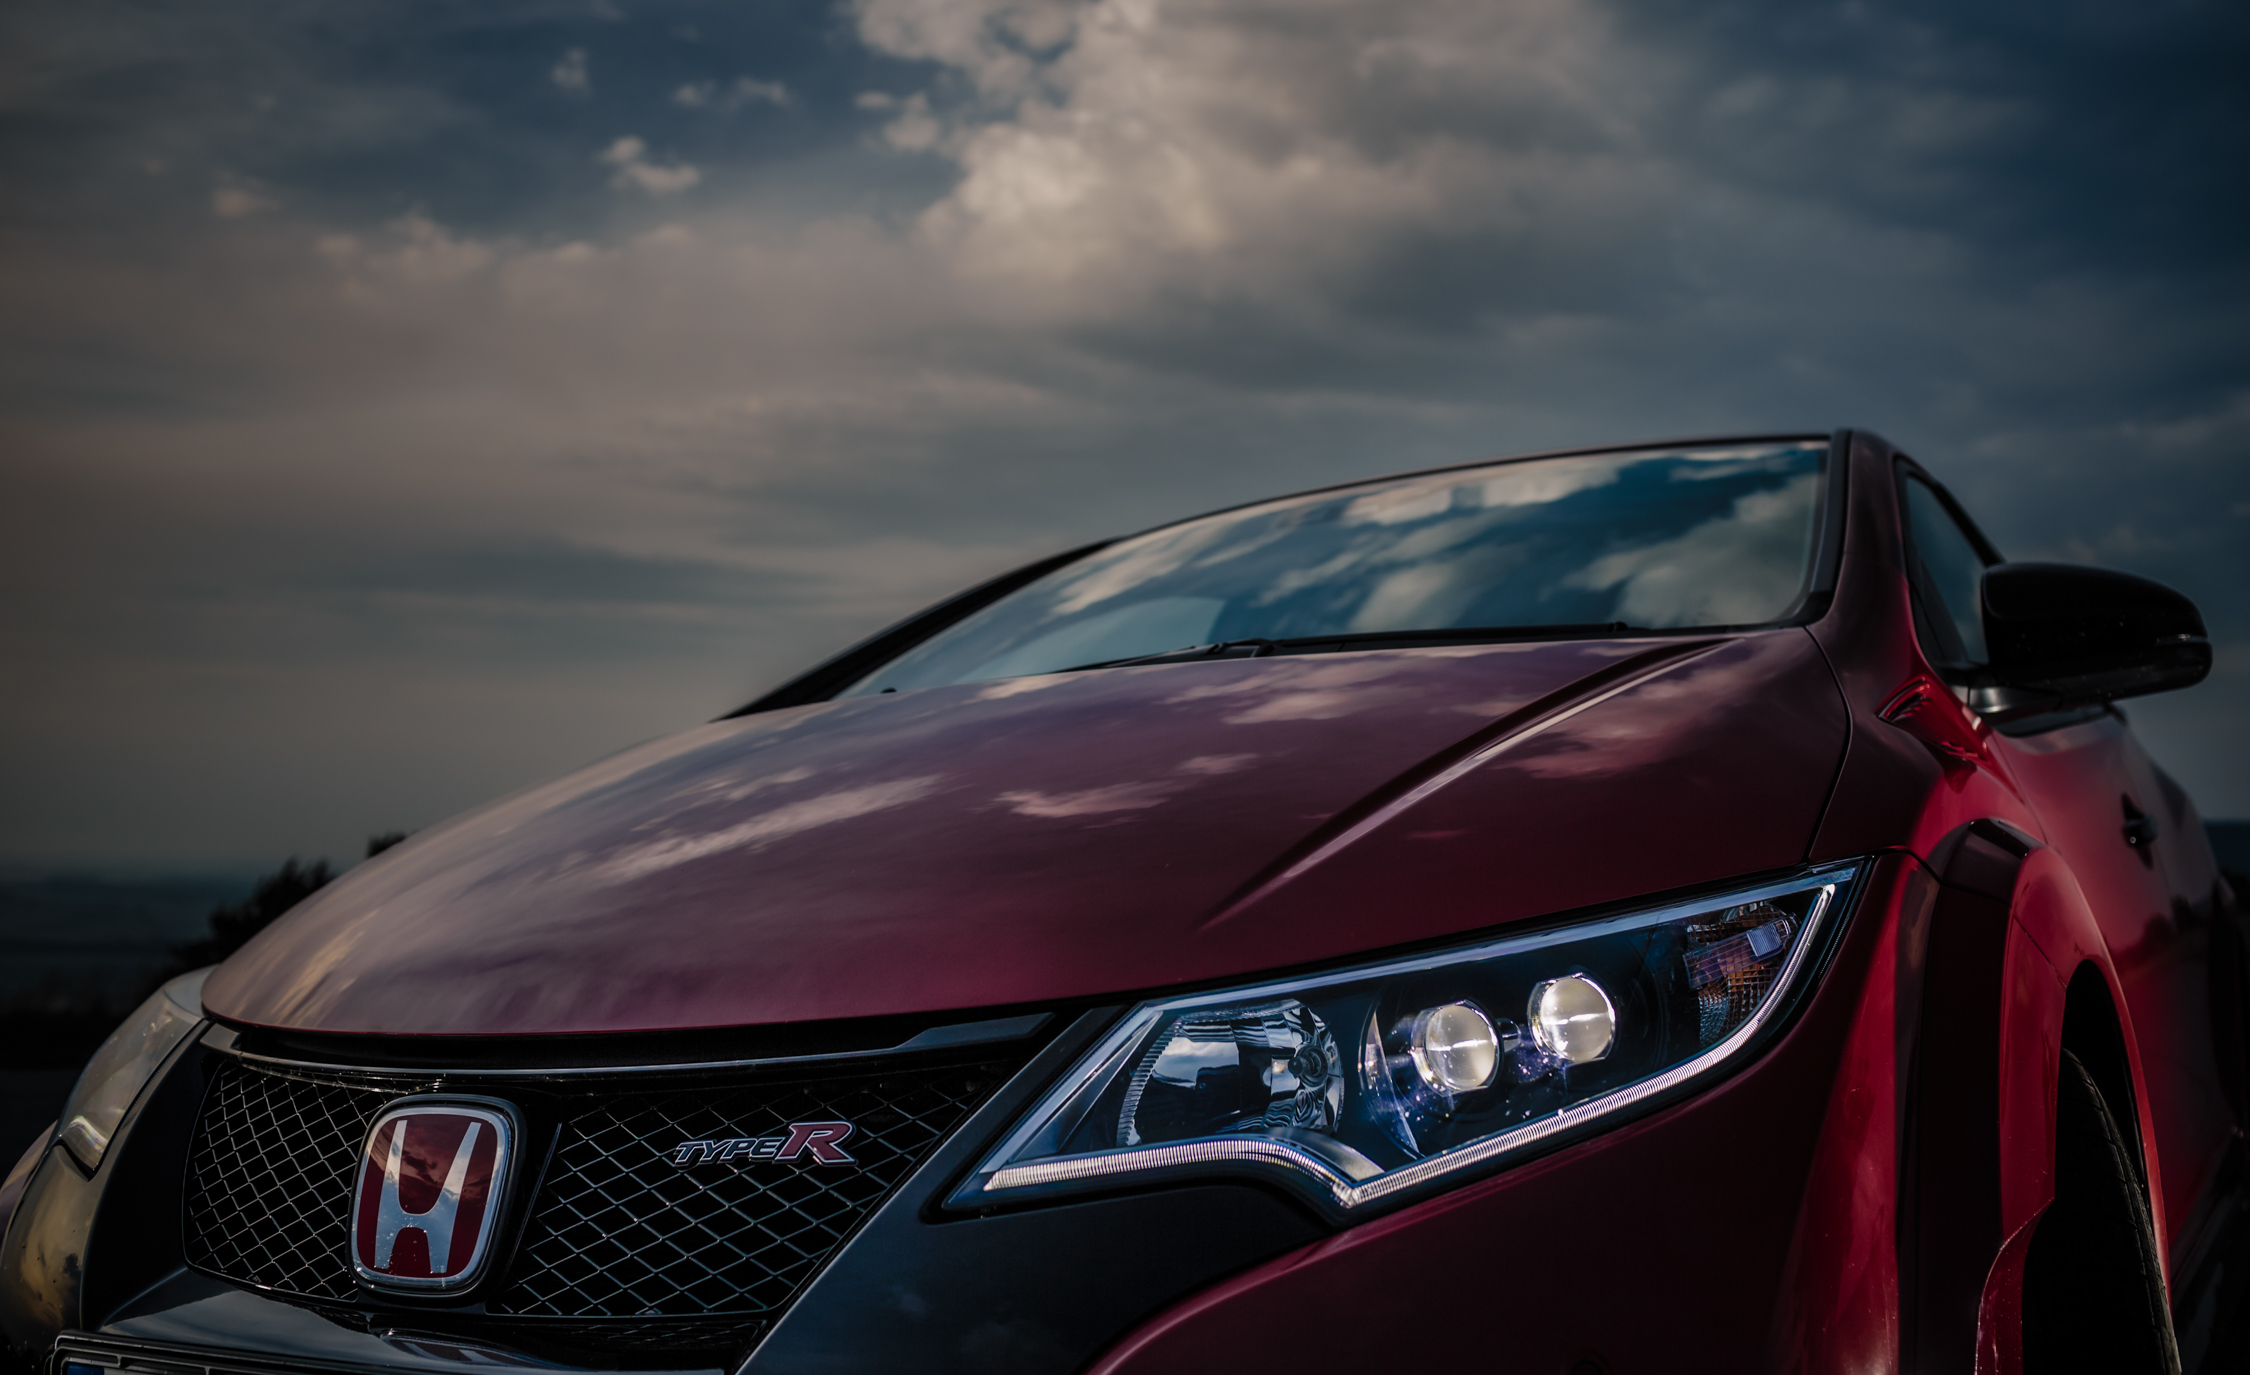 2015 Honda Civic Type R Exterior Headlight